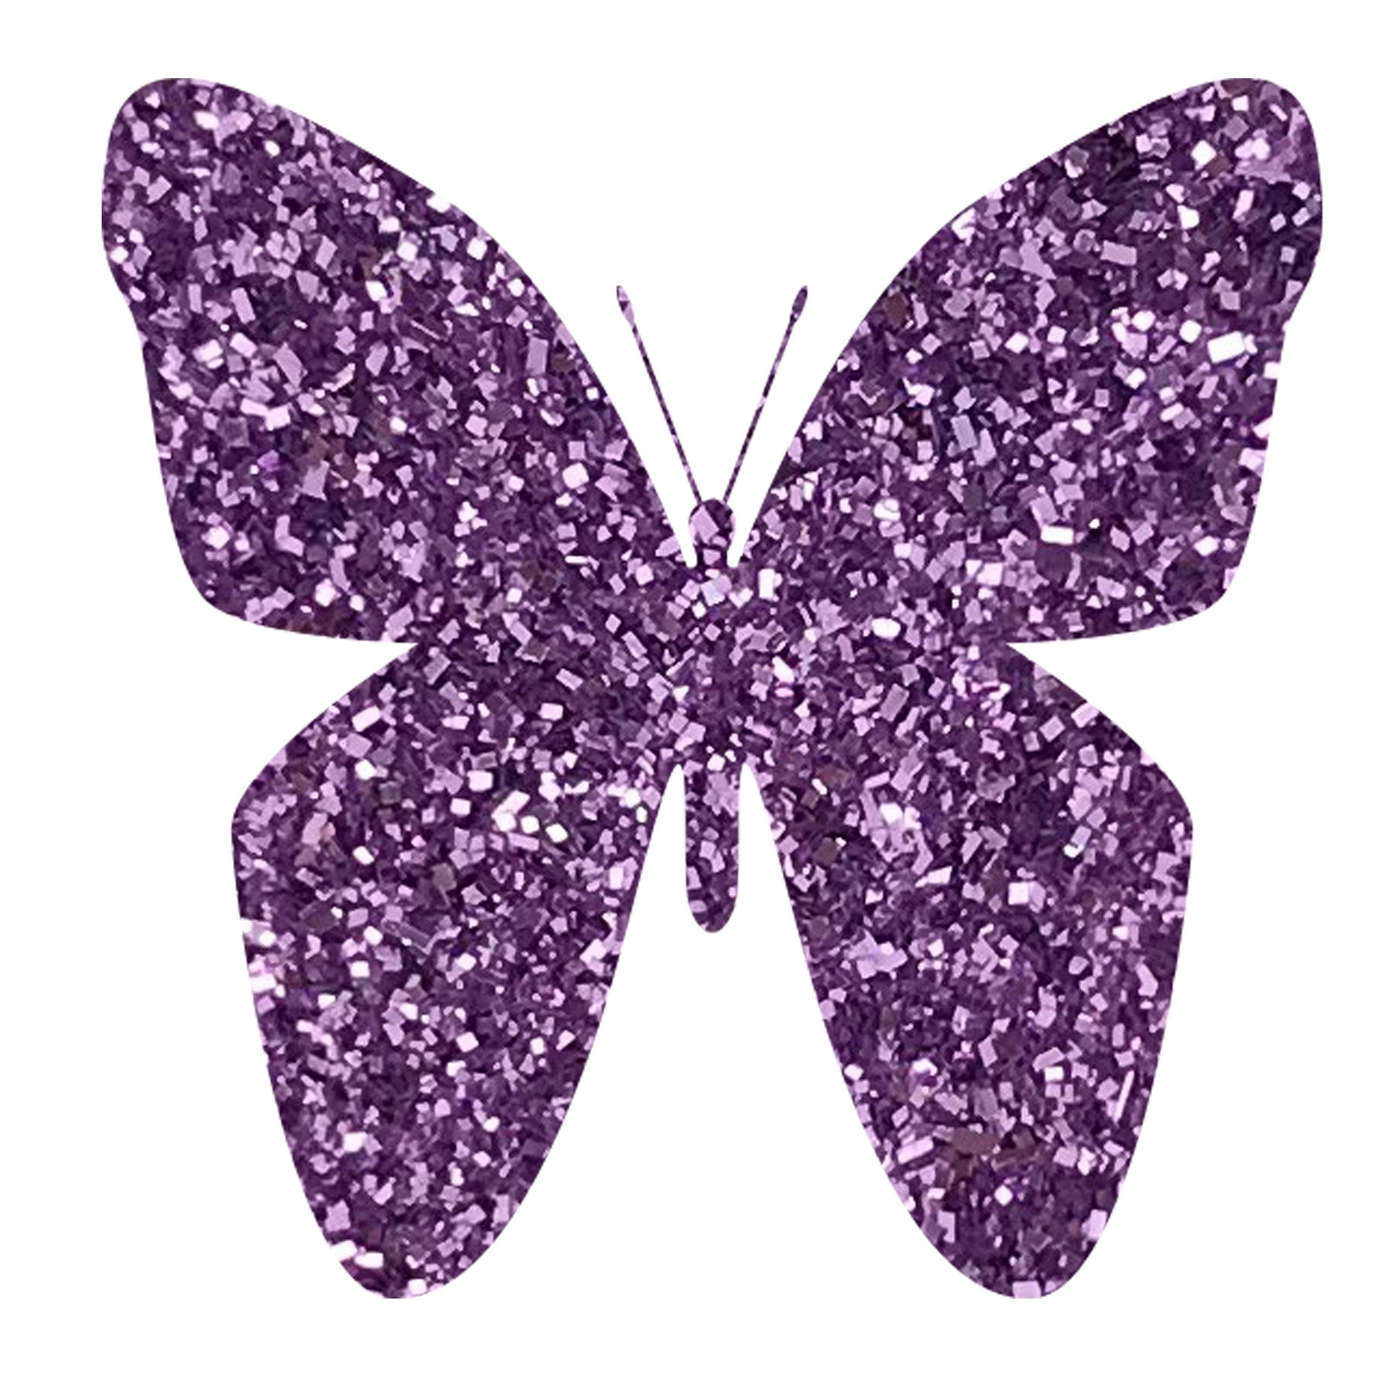 Ultrafine Glitter Sugar Plum (Opaque) G1096